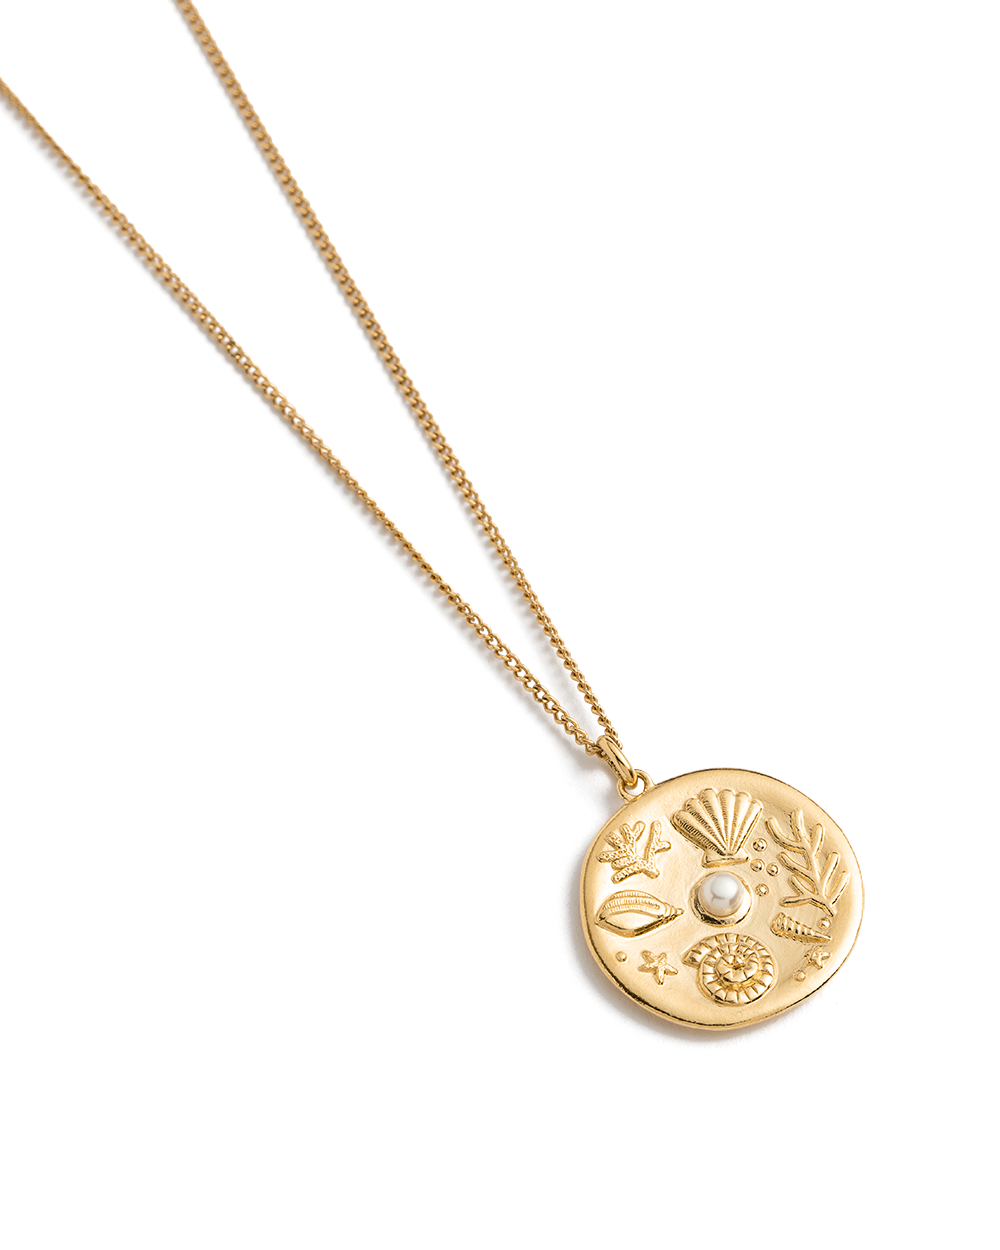 BY THE SEA COIN NECKLACE (18K-GOLD-VERMEIL) 02